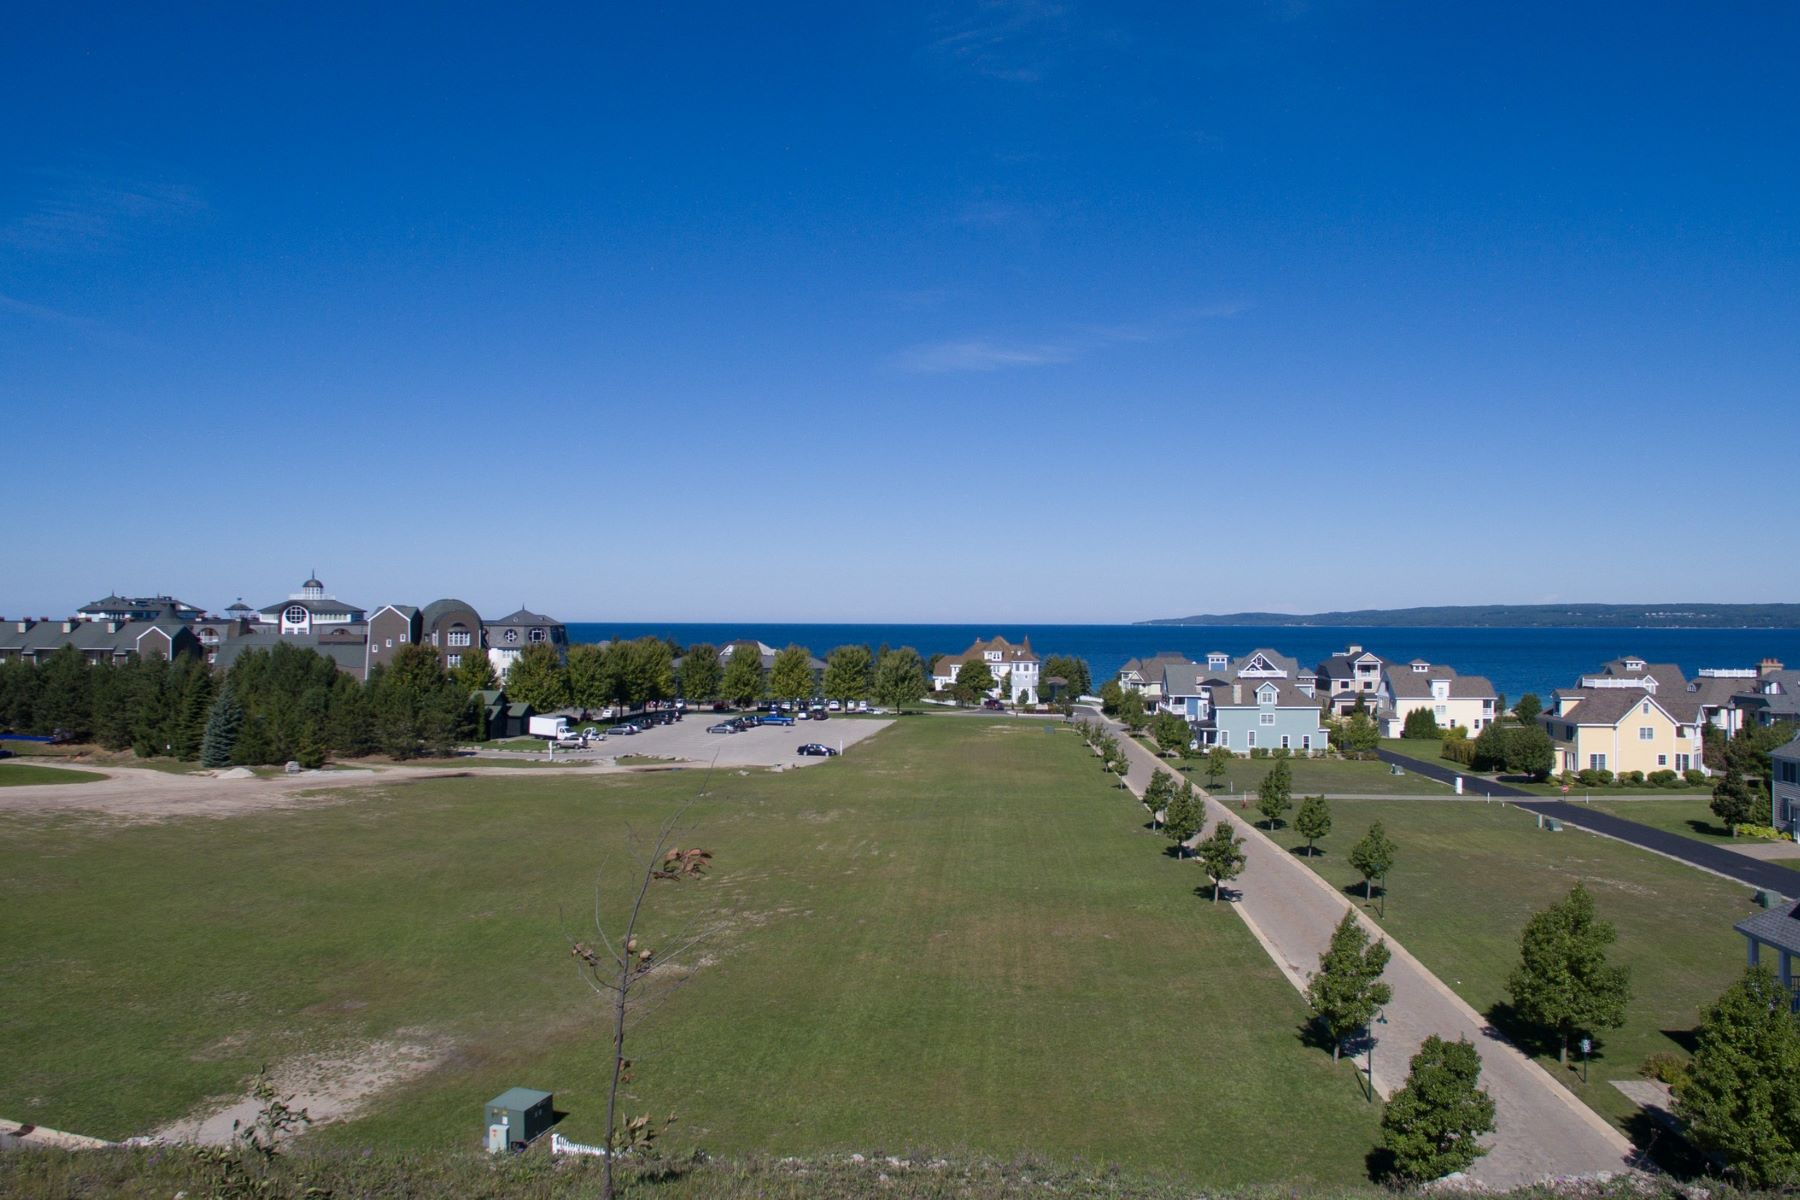 Land for Sale at Unit 5, The Ridge TBD Cliffs Drive, Unit 5, The Ridge Bay Harbor, Michigan 49770 United States